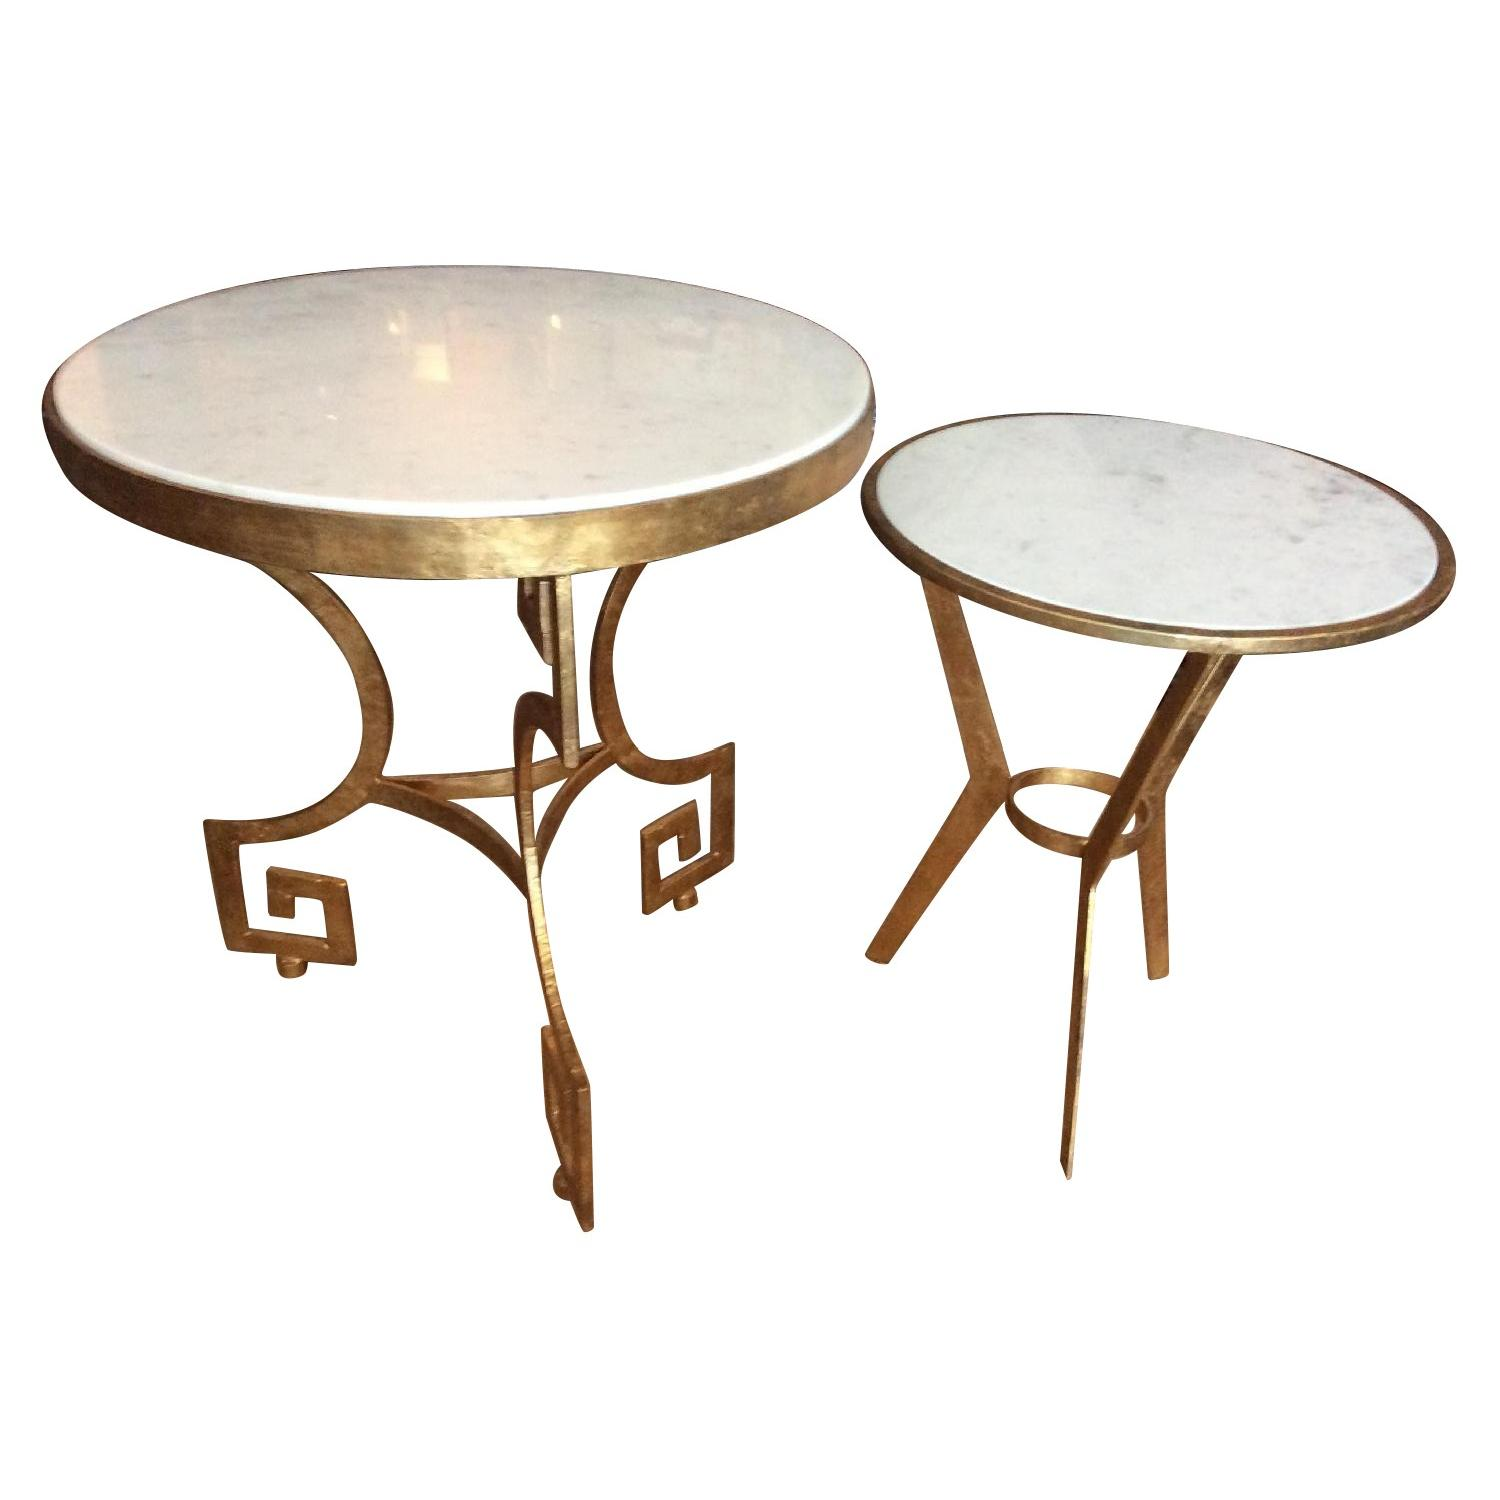 Gold Metal Nesting Tables w/ White Marble Top